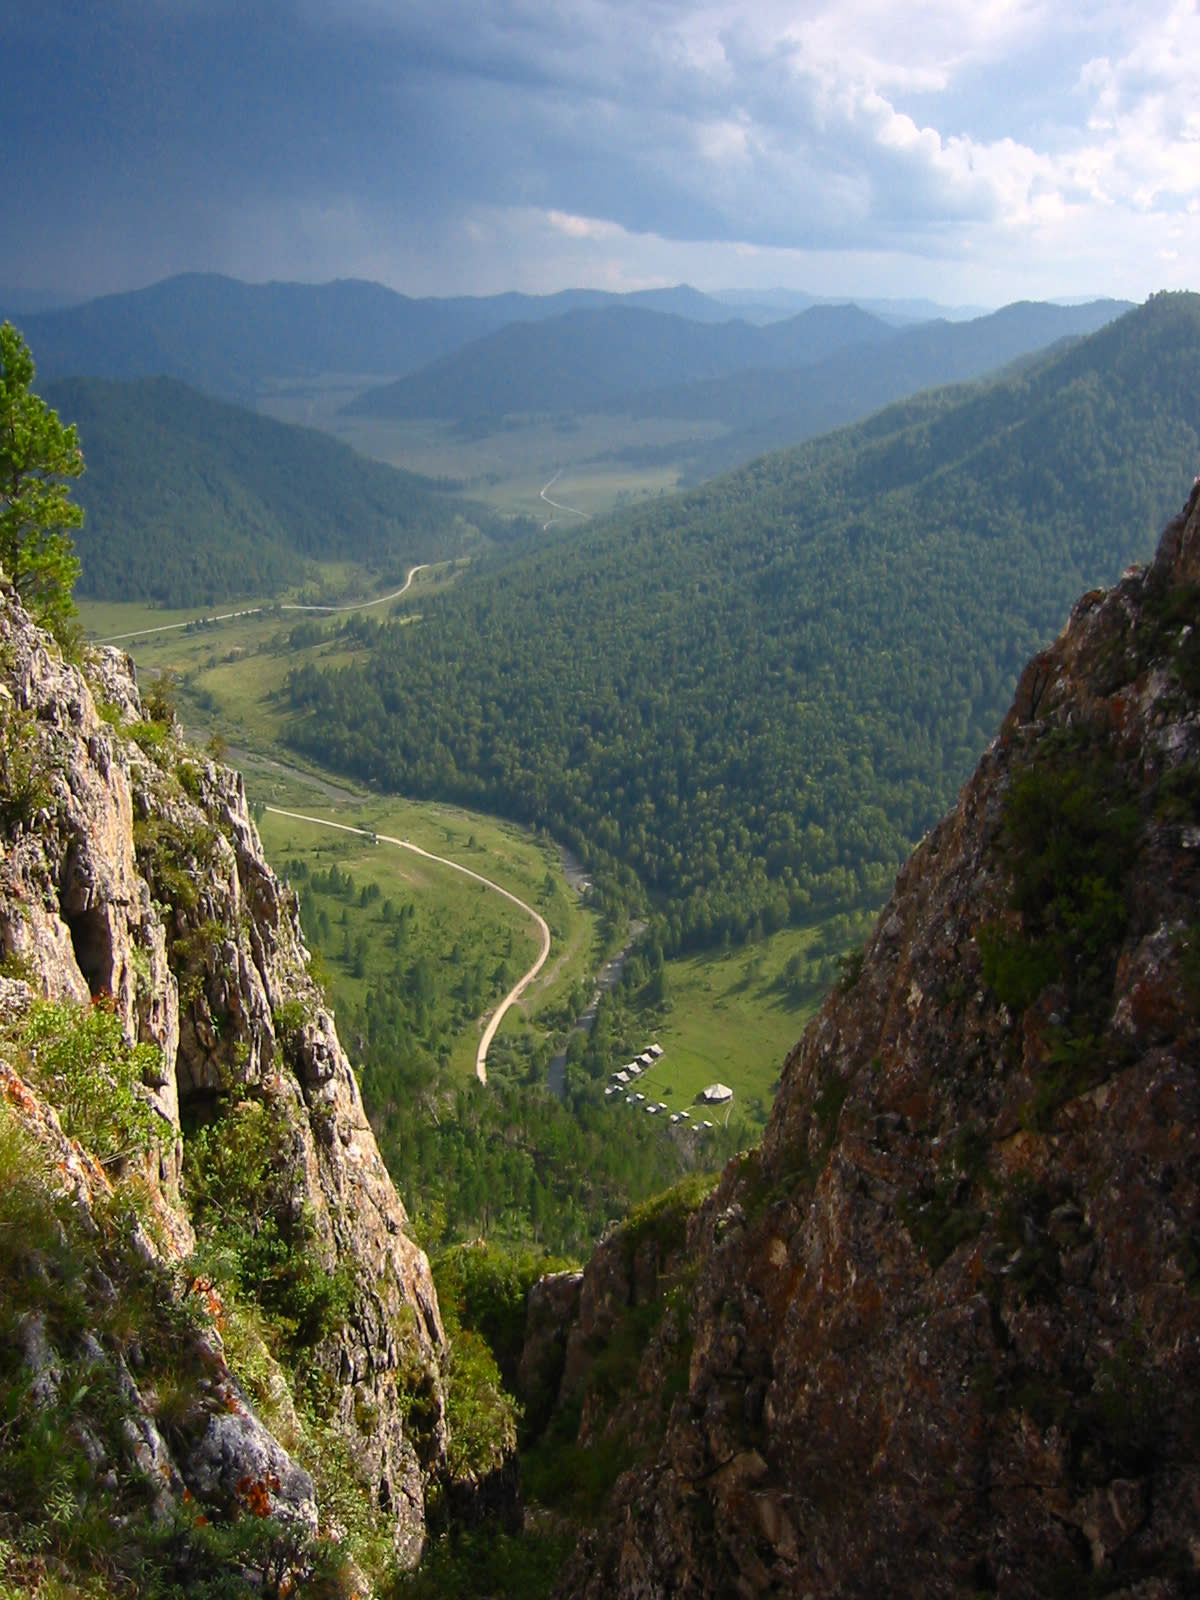 This undated photo provided by Bence Viola of the University of Toronto in August 2018 shows the valley above a cave where Denisovan fossils were found in the Altai Krai area of Russia. On Wednesday, Aug. 22, 2018, scientists reported in the journal Nature that they have found the remains of an ancient female whose mother was a Neanderthal and whose father belonged to another extinct group of human relatives known as Denisovans. (Bence Viola/Department of Anthropology - University of Toronto/Max Planck Institute for Evolutionary Anthropology via AP)